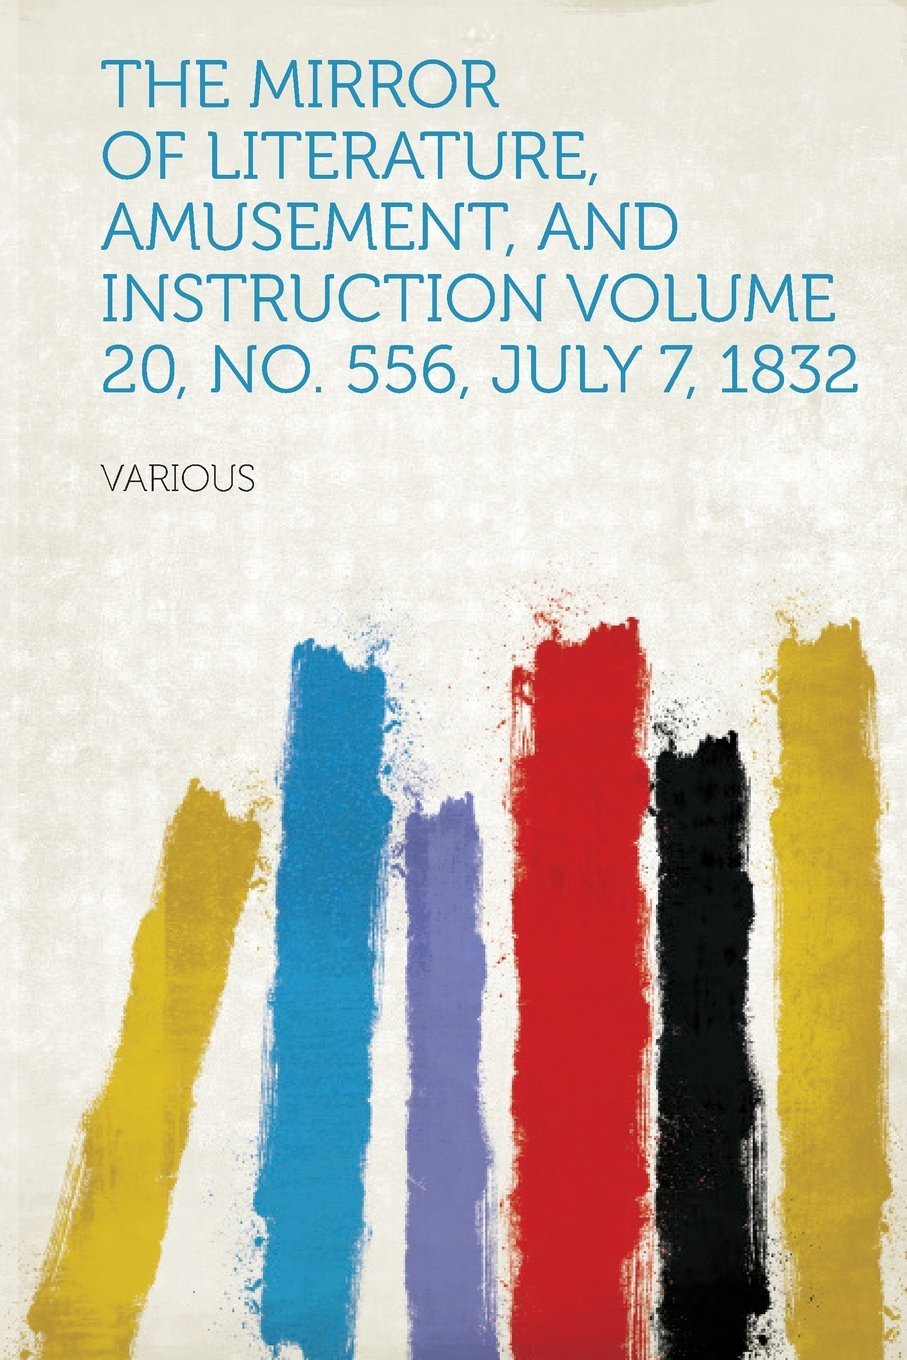 The Mirror of Literature, Amusement, and Instruction Volume 20, No. 556, July 7, 1832 ebook